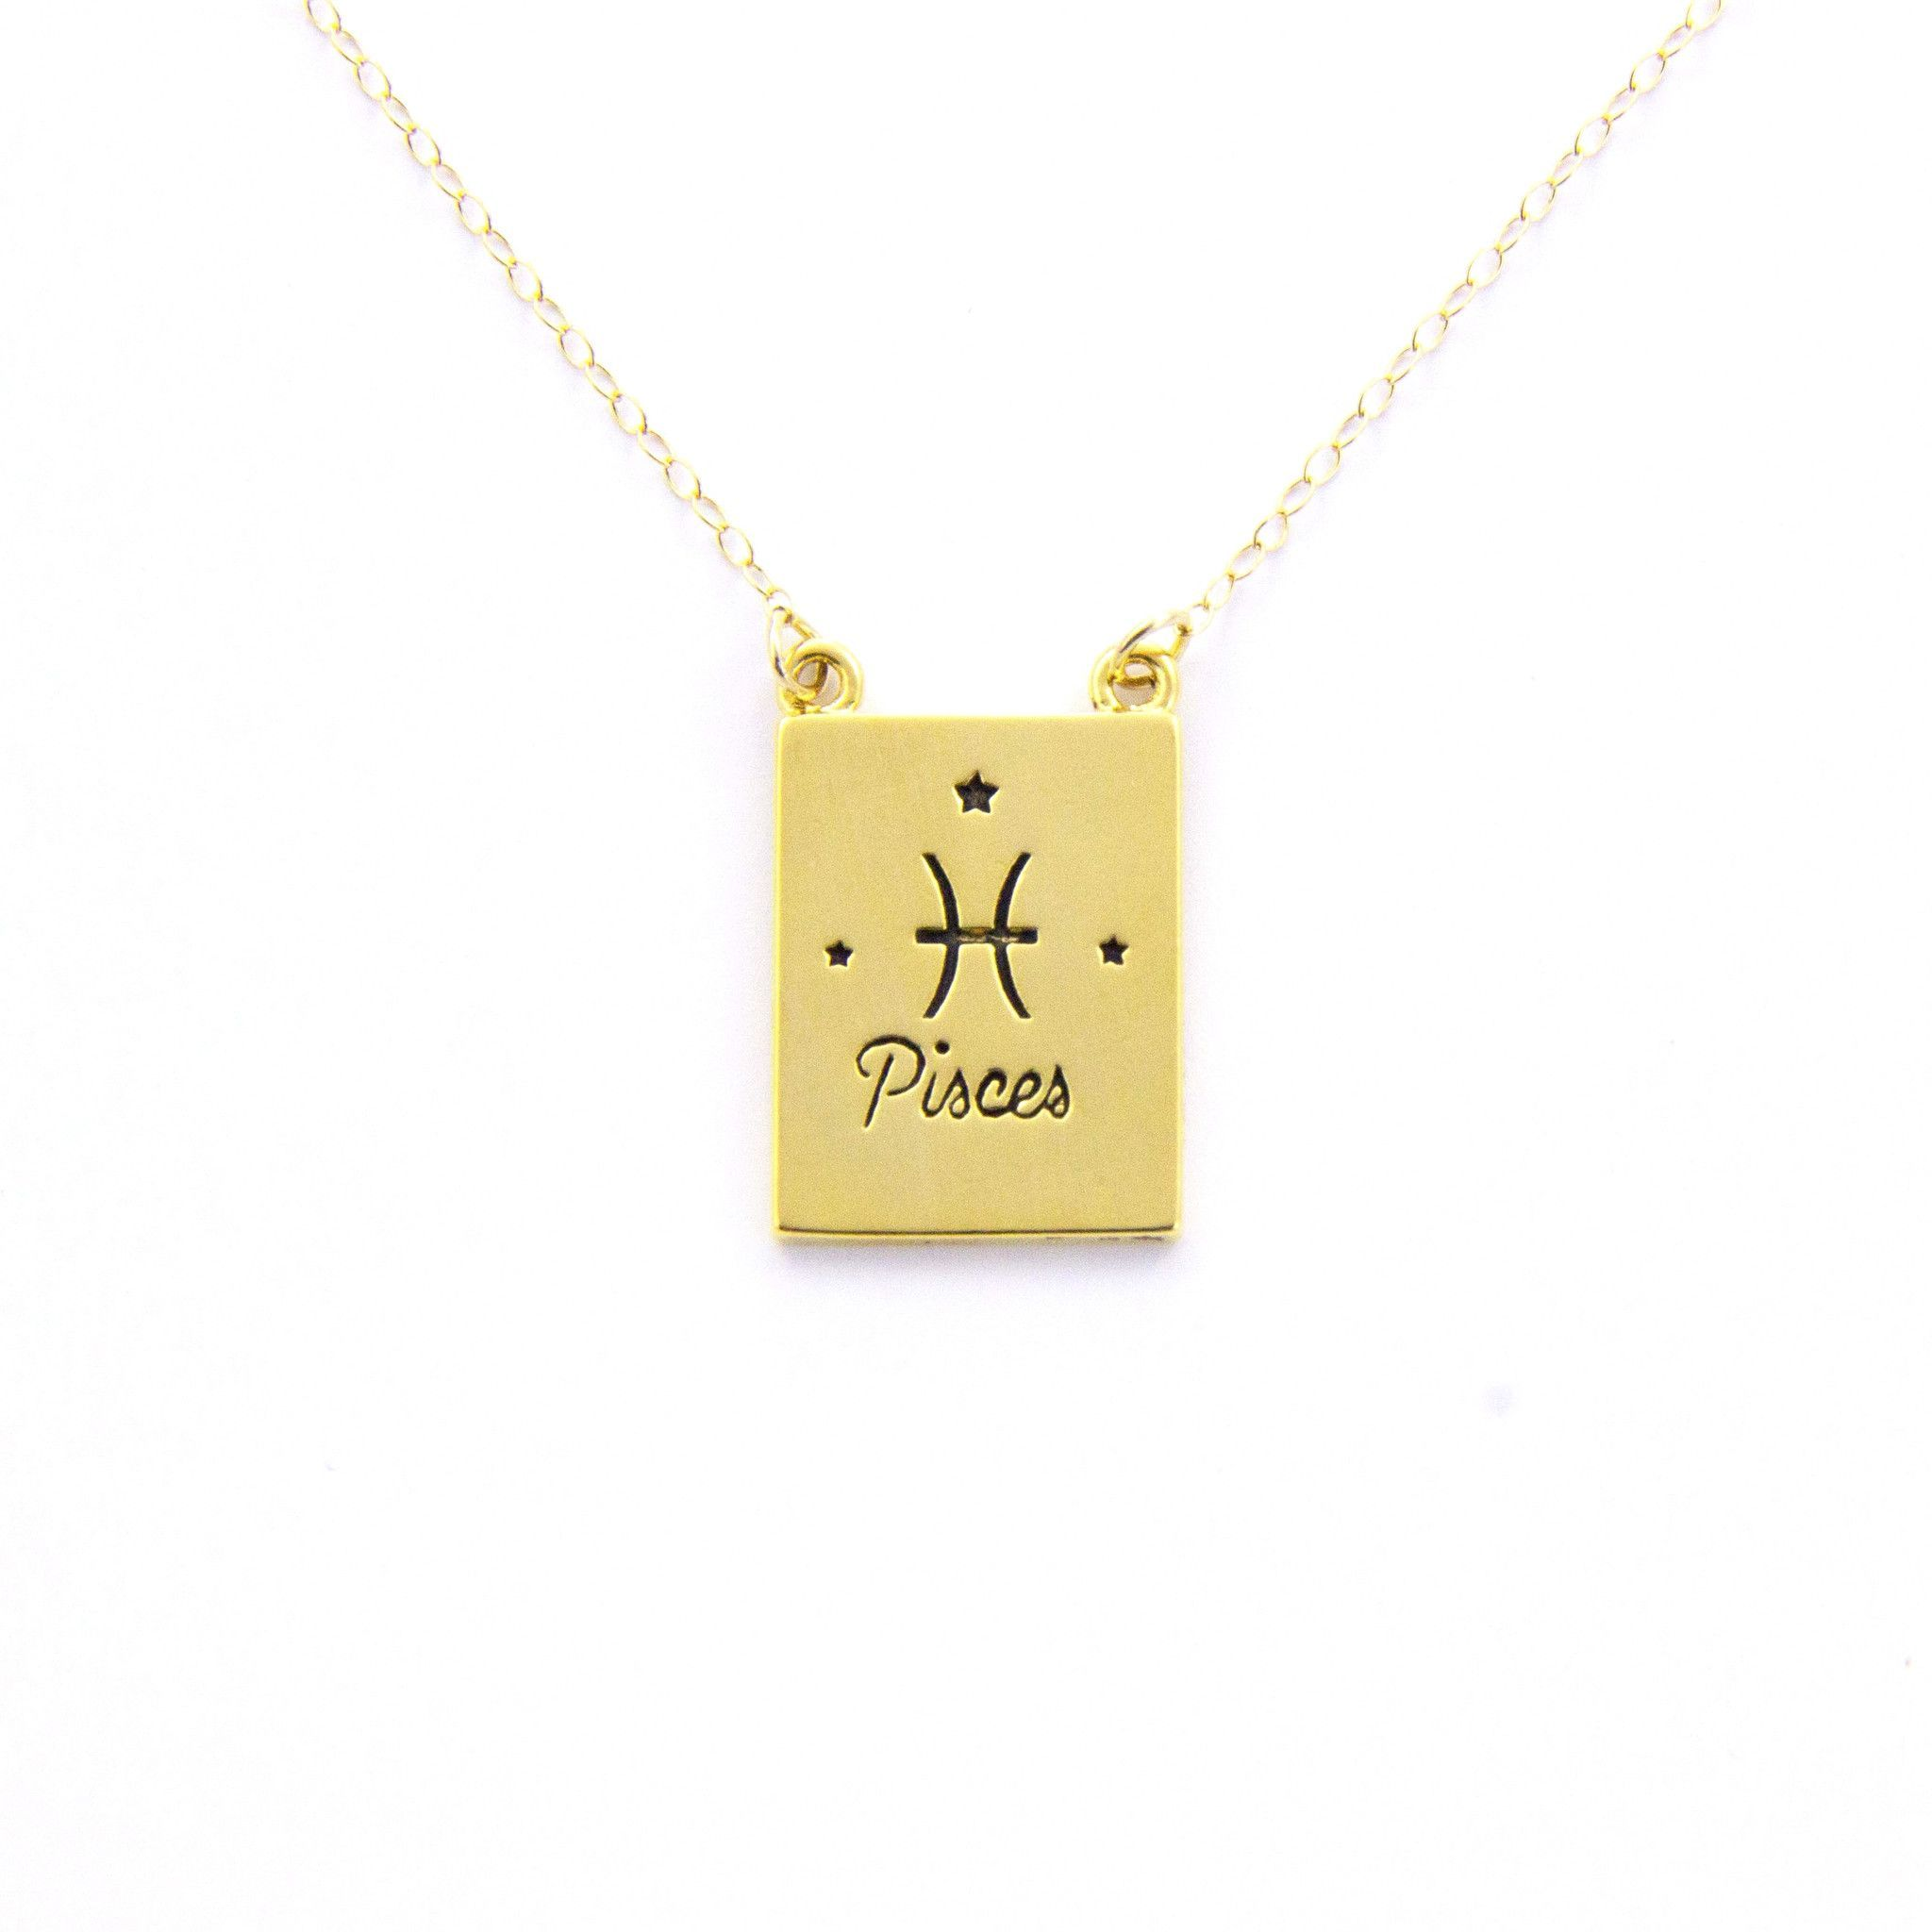 Pisces Necklace JEWELRY Pinterest